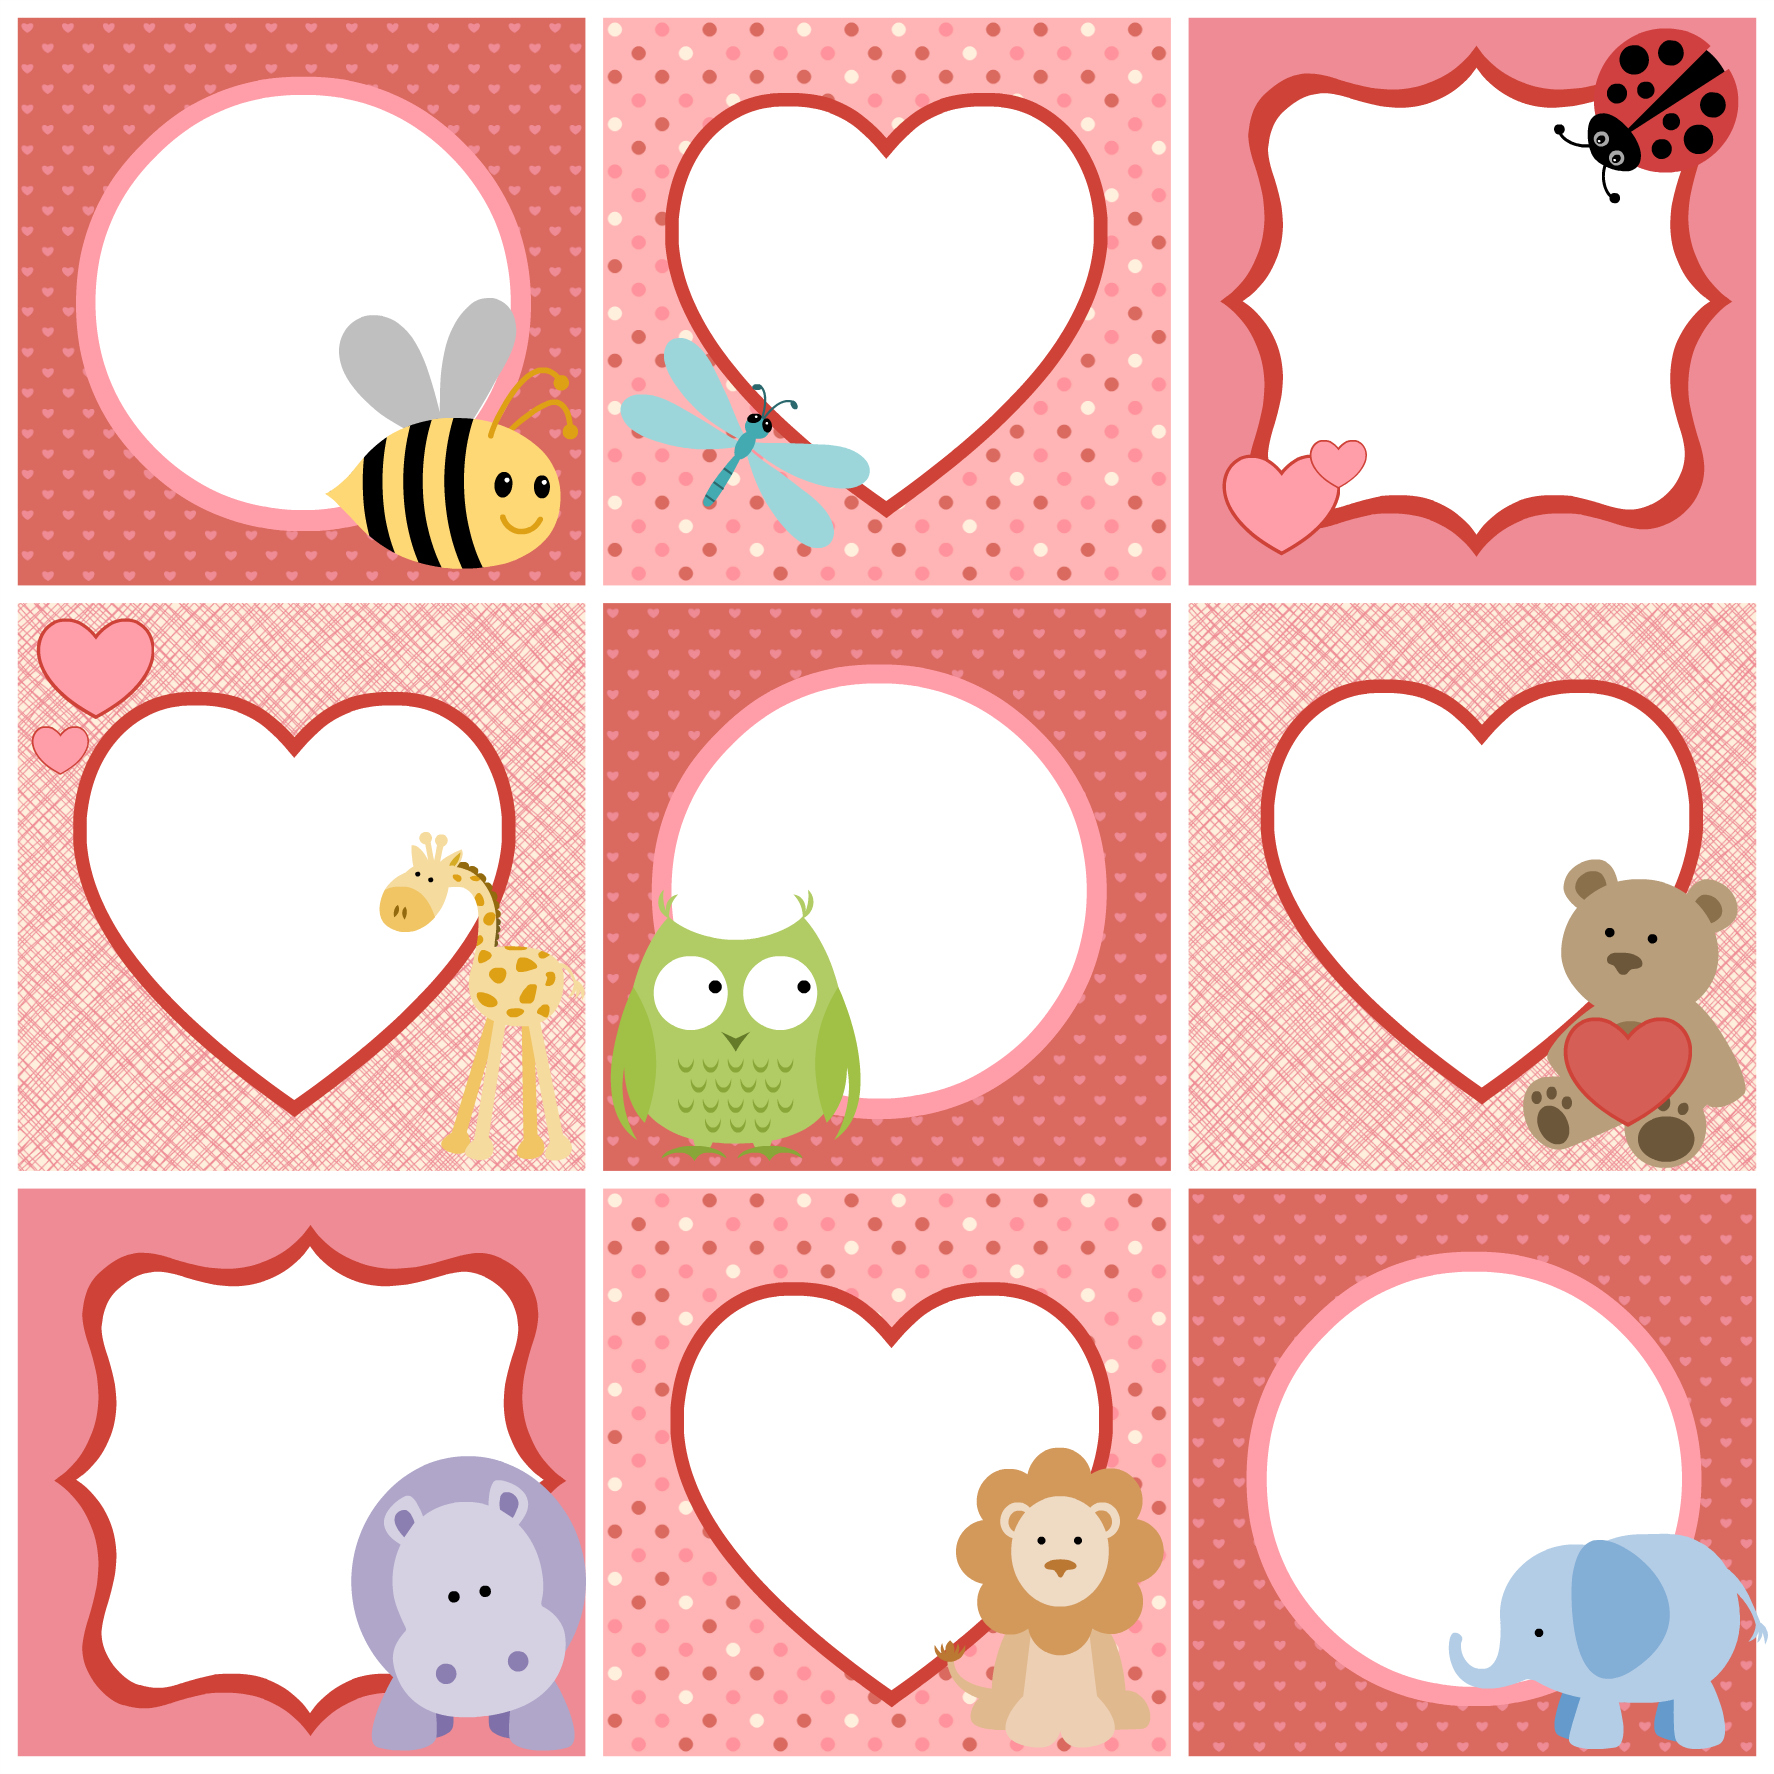 4 Images of Cute Printable Tags